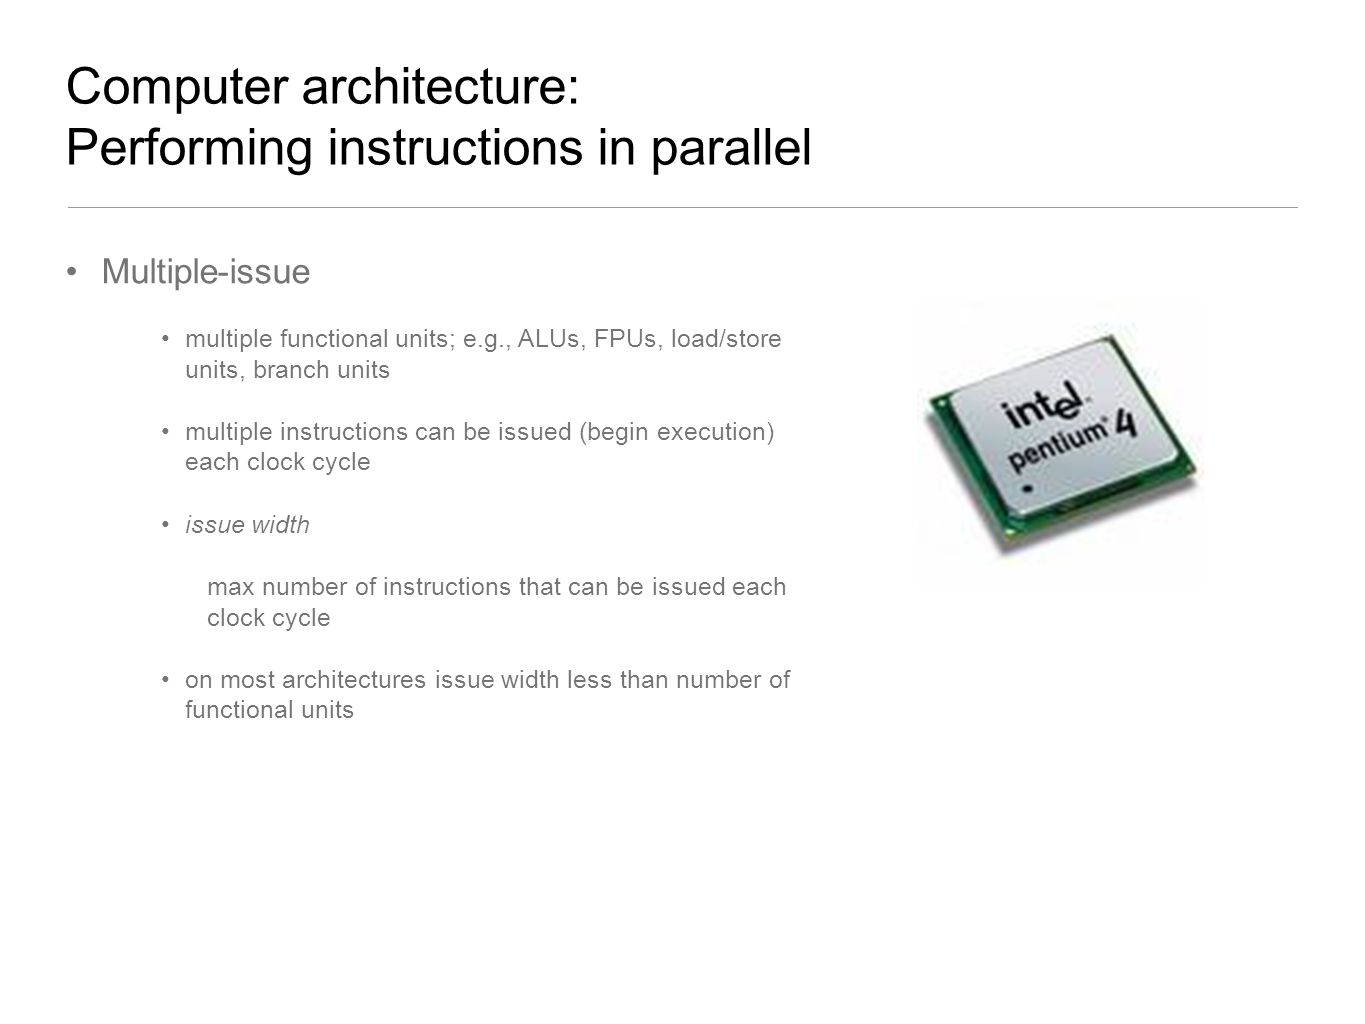 Computer architecture: Performing instructions in parallel